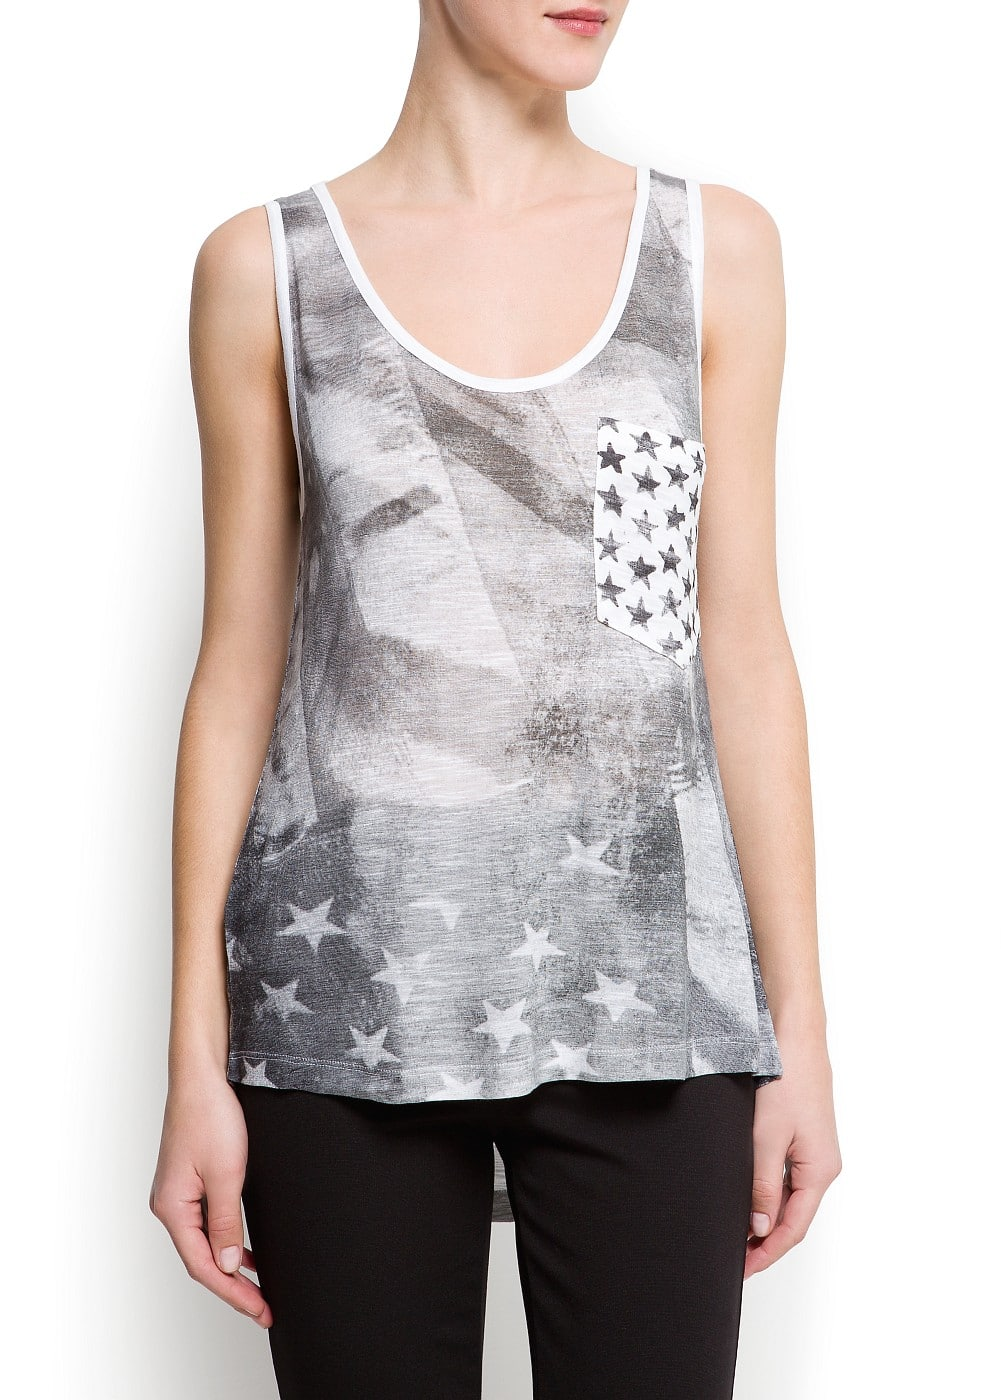 Printed flag t-shirt